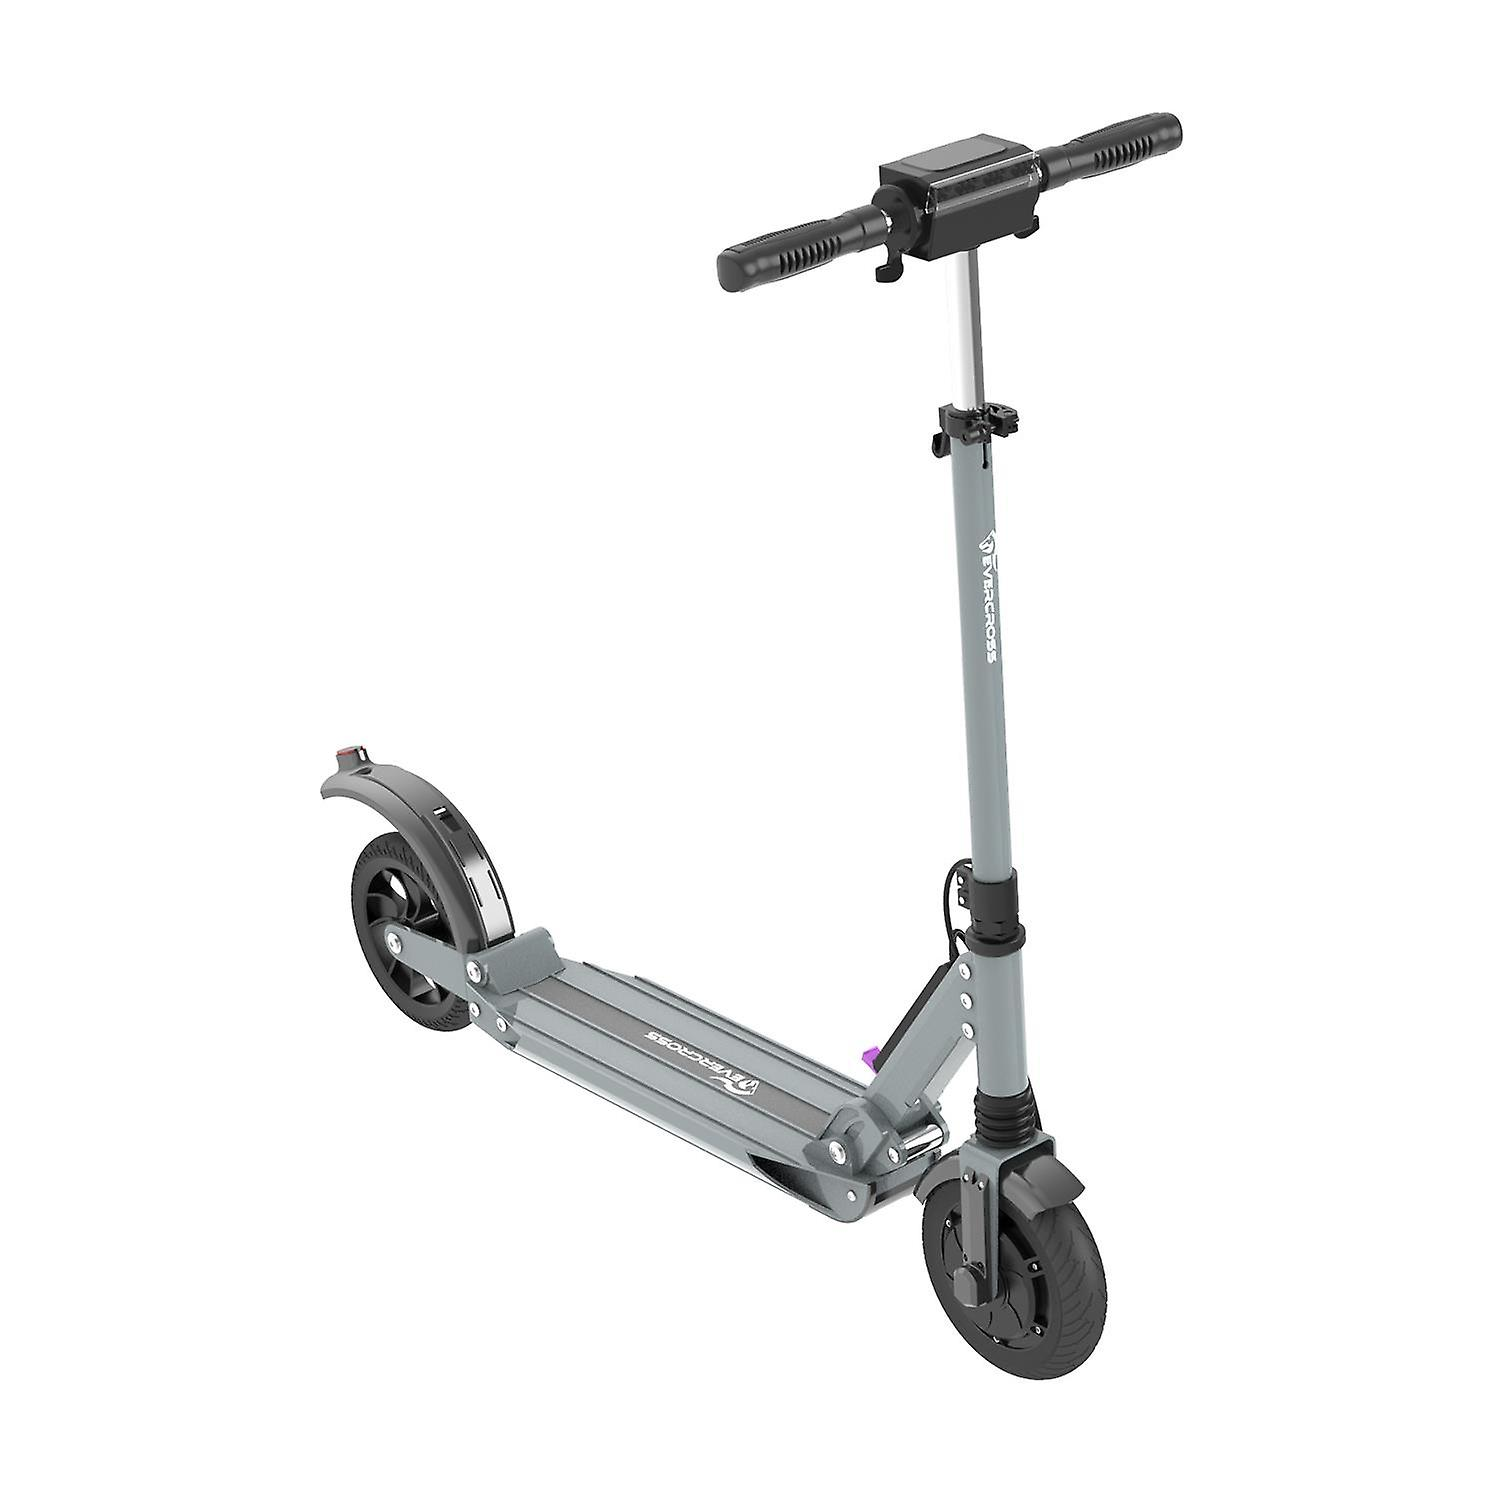 8.5inch Electric Scooter with LCD Display Screen Foldable skateboard Long-range Battery Adult Electric Scooter